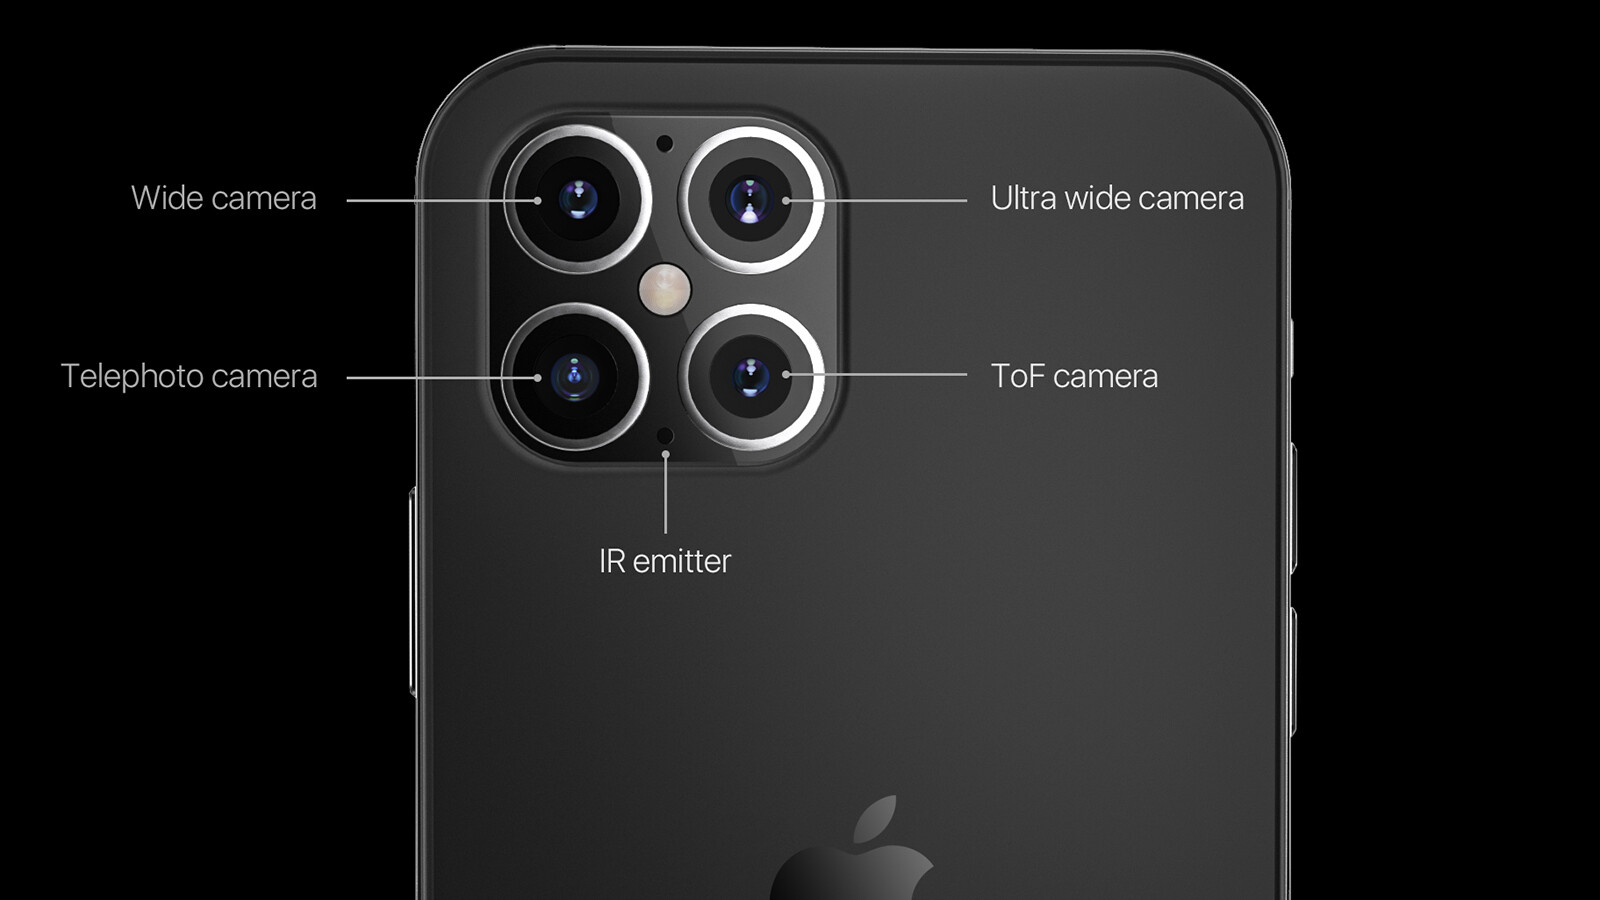 The Apple AR/VR platform release won't be on the iPhone 5G